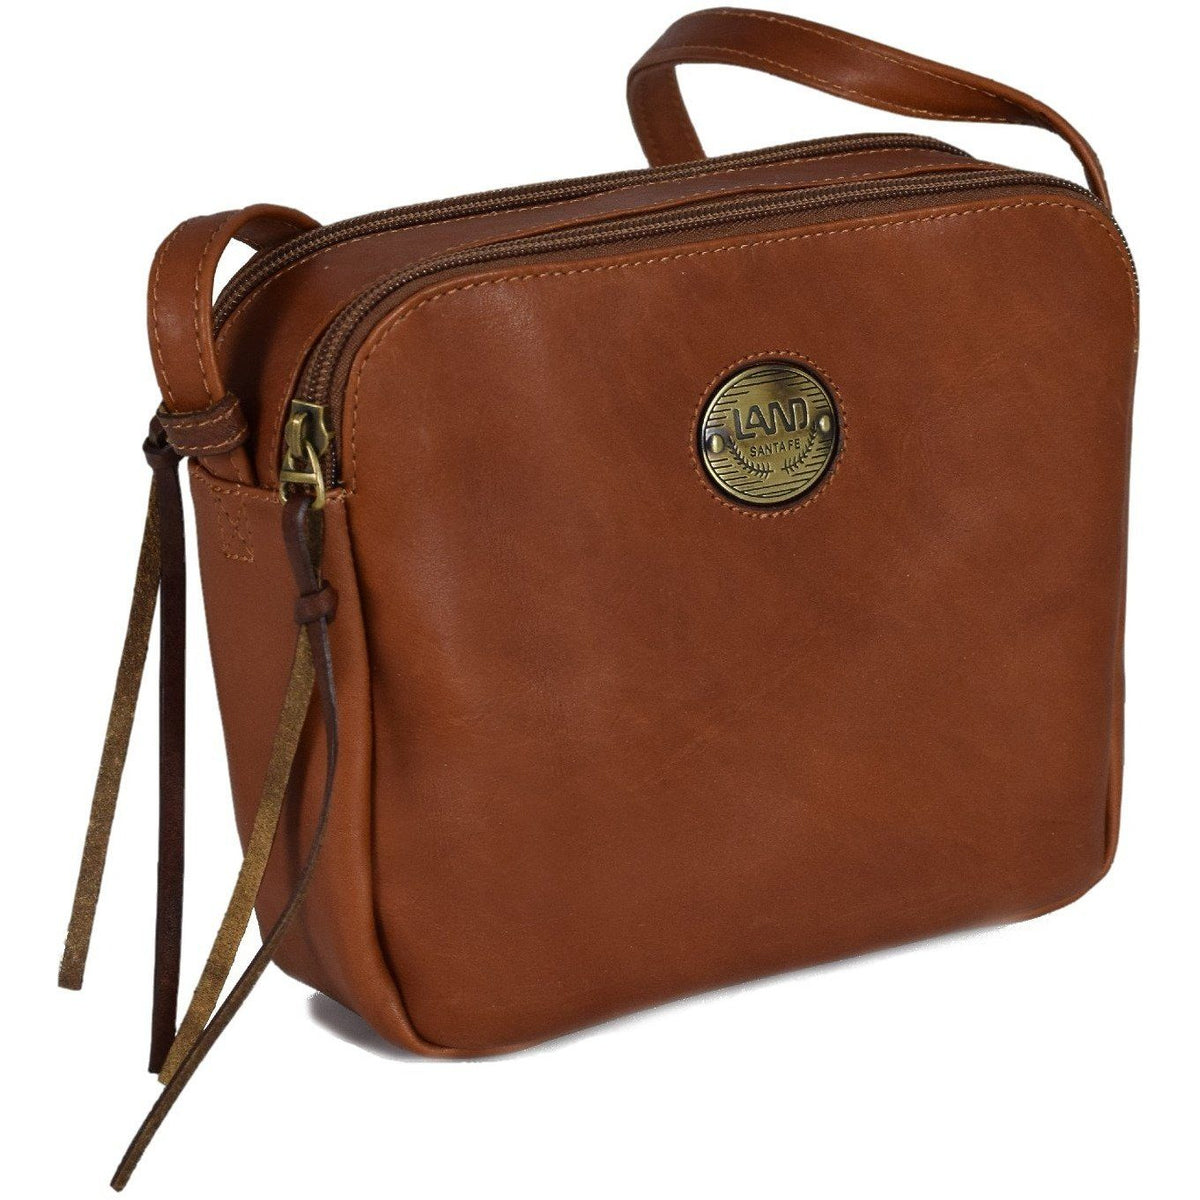 Santa Fe Siena Crossbody, Crossover Bag | LAND Leather